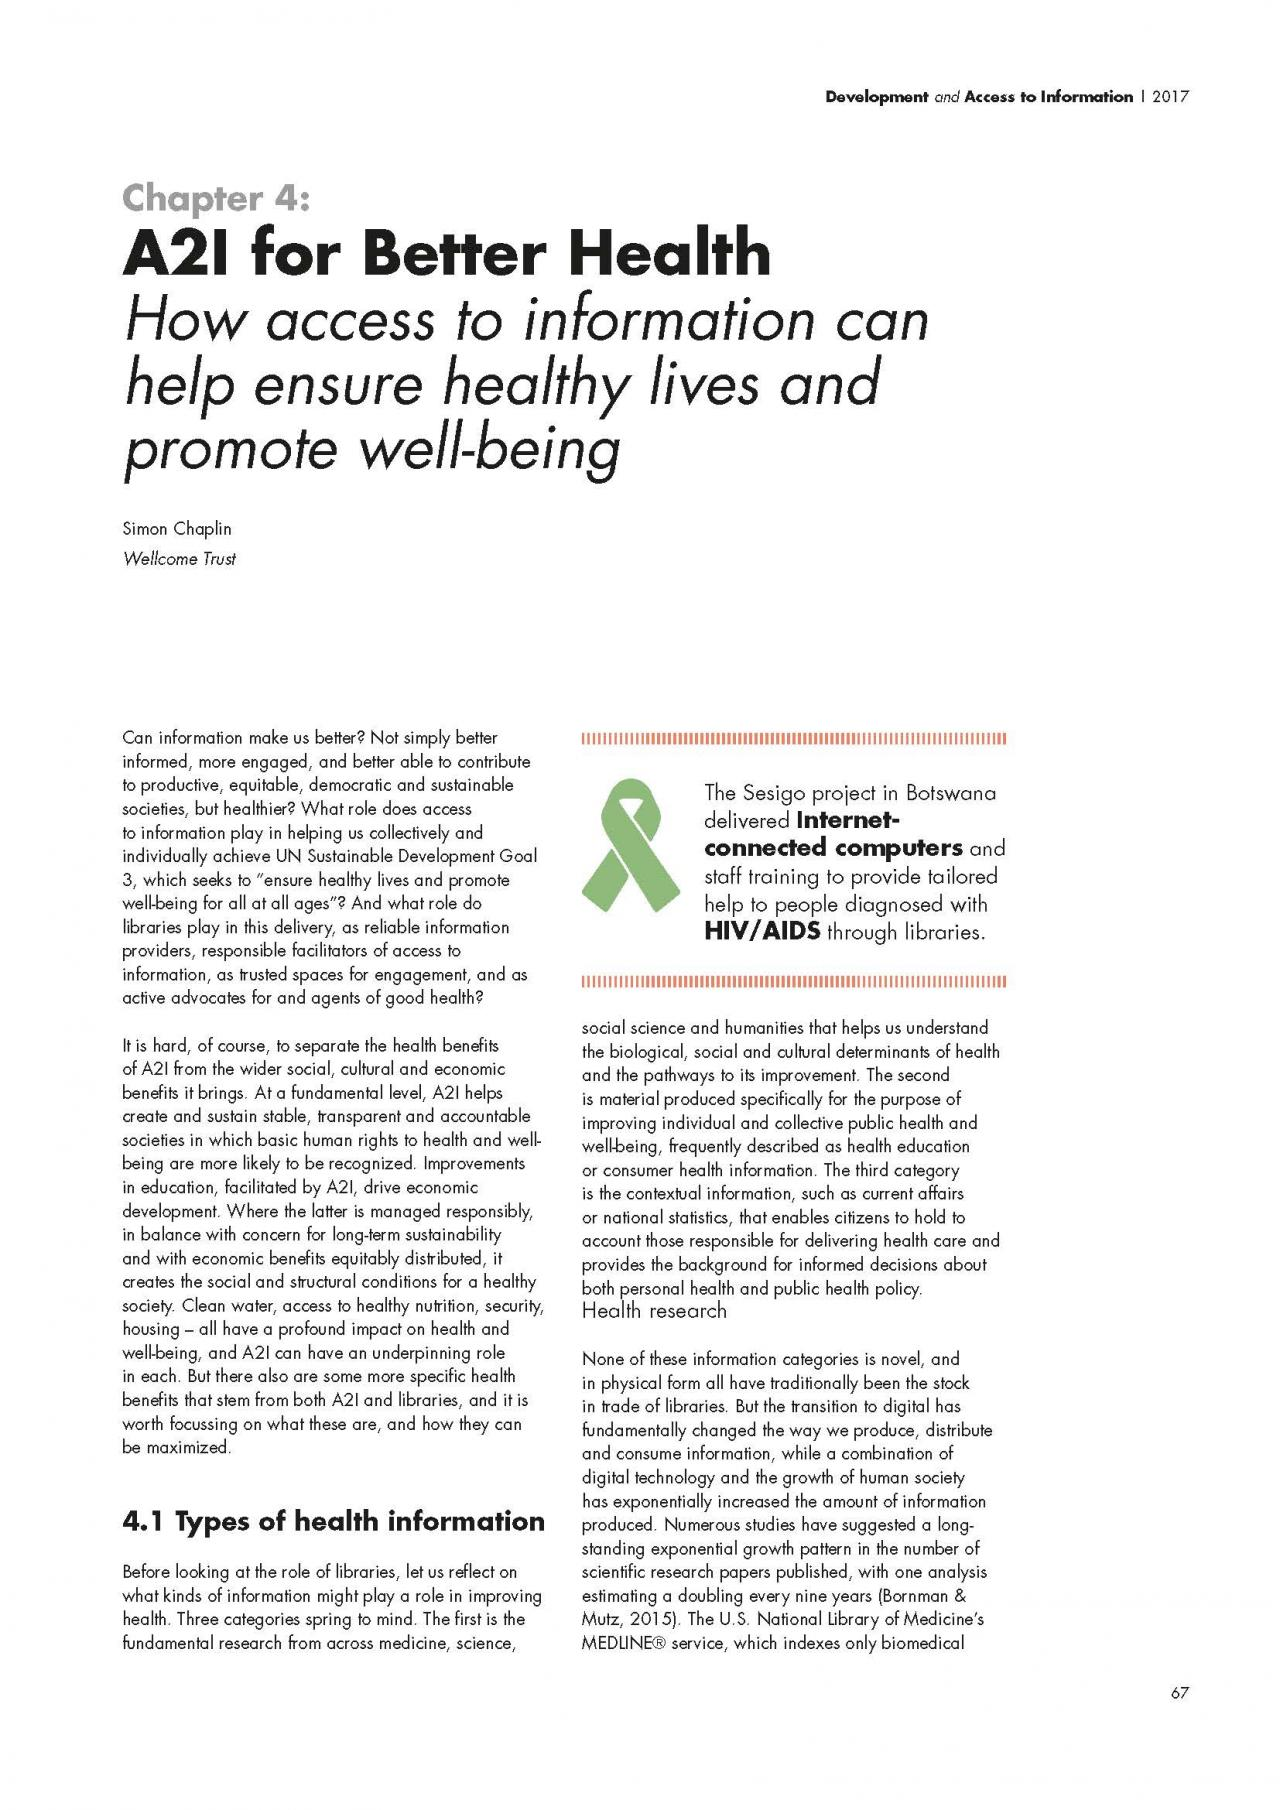 Chapter 4: A2I for Better Health: How access to information can help ensure healthy lives and promote well-being